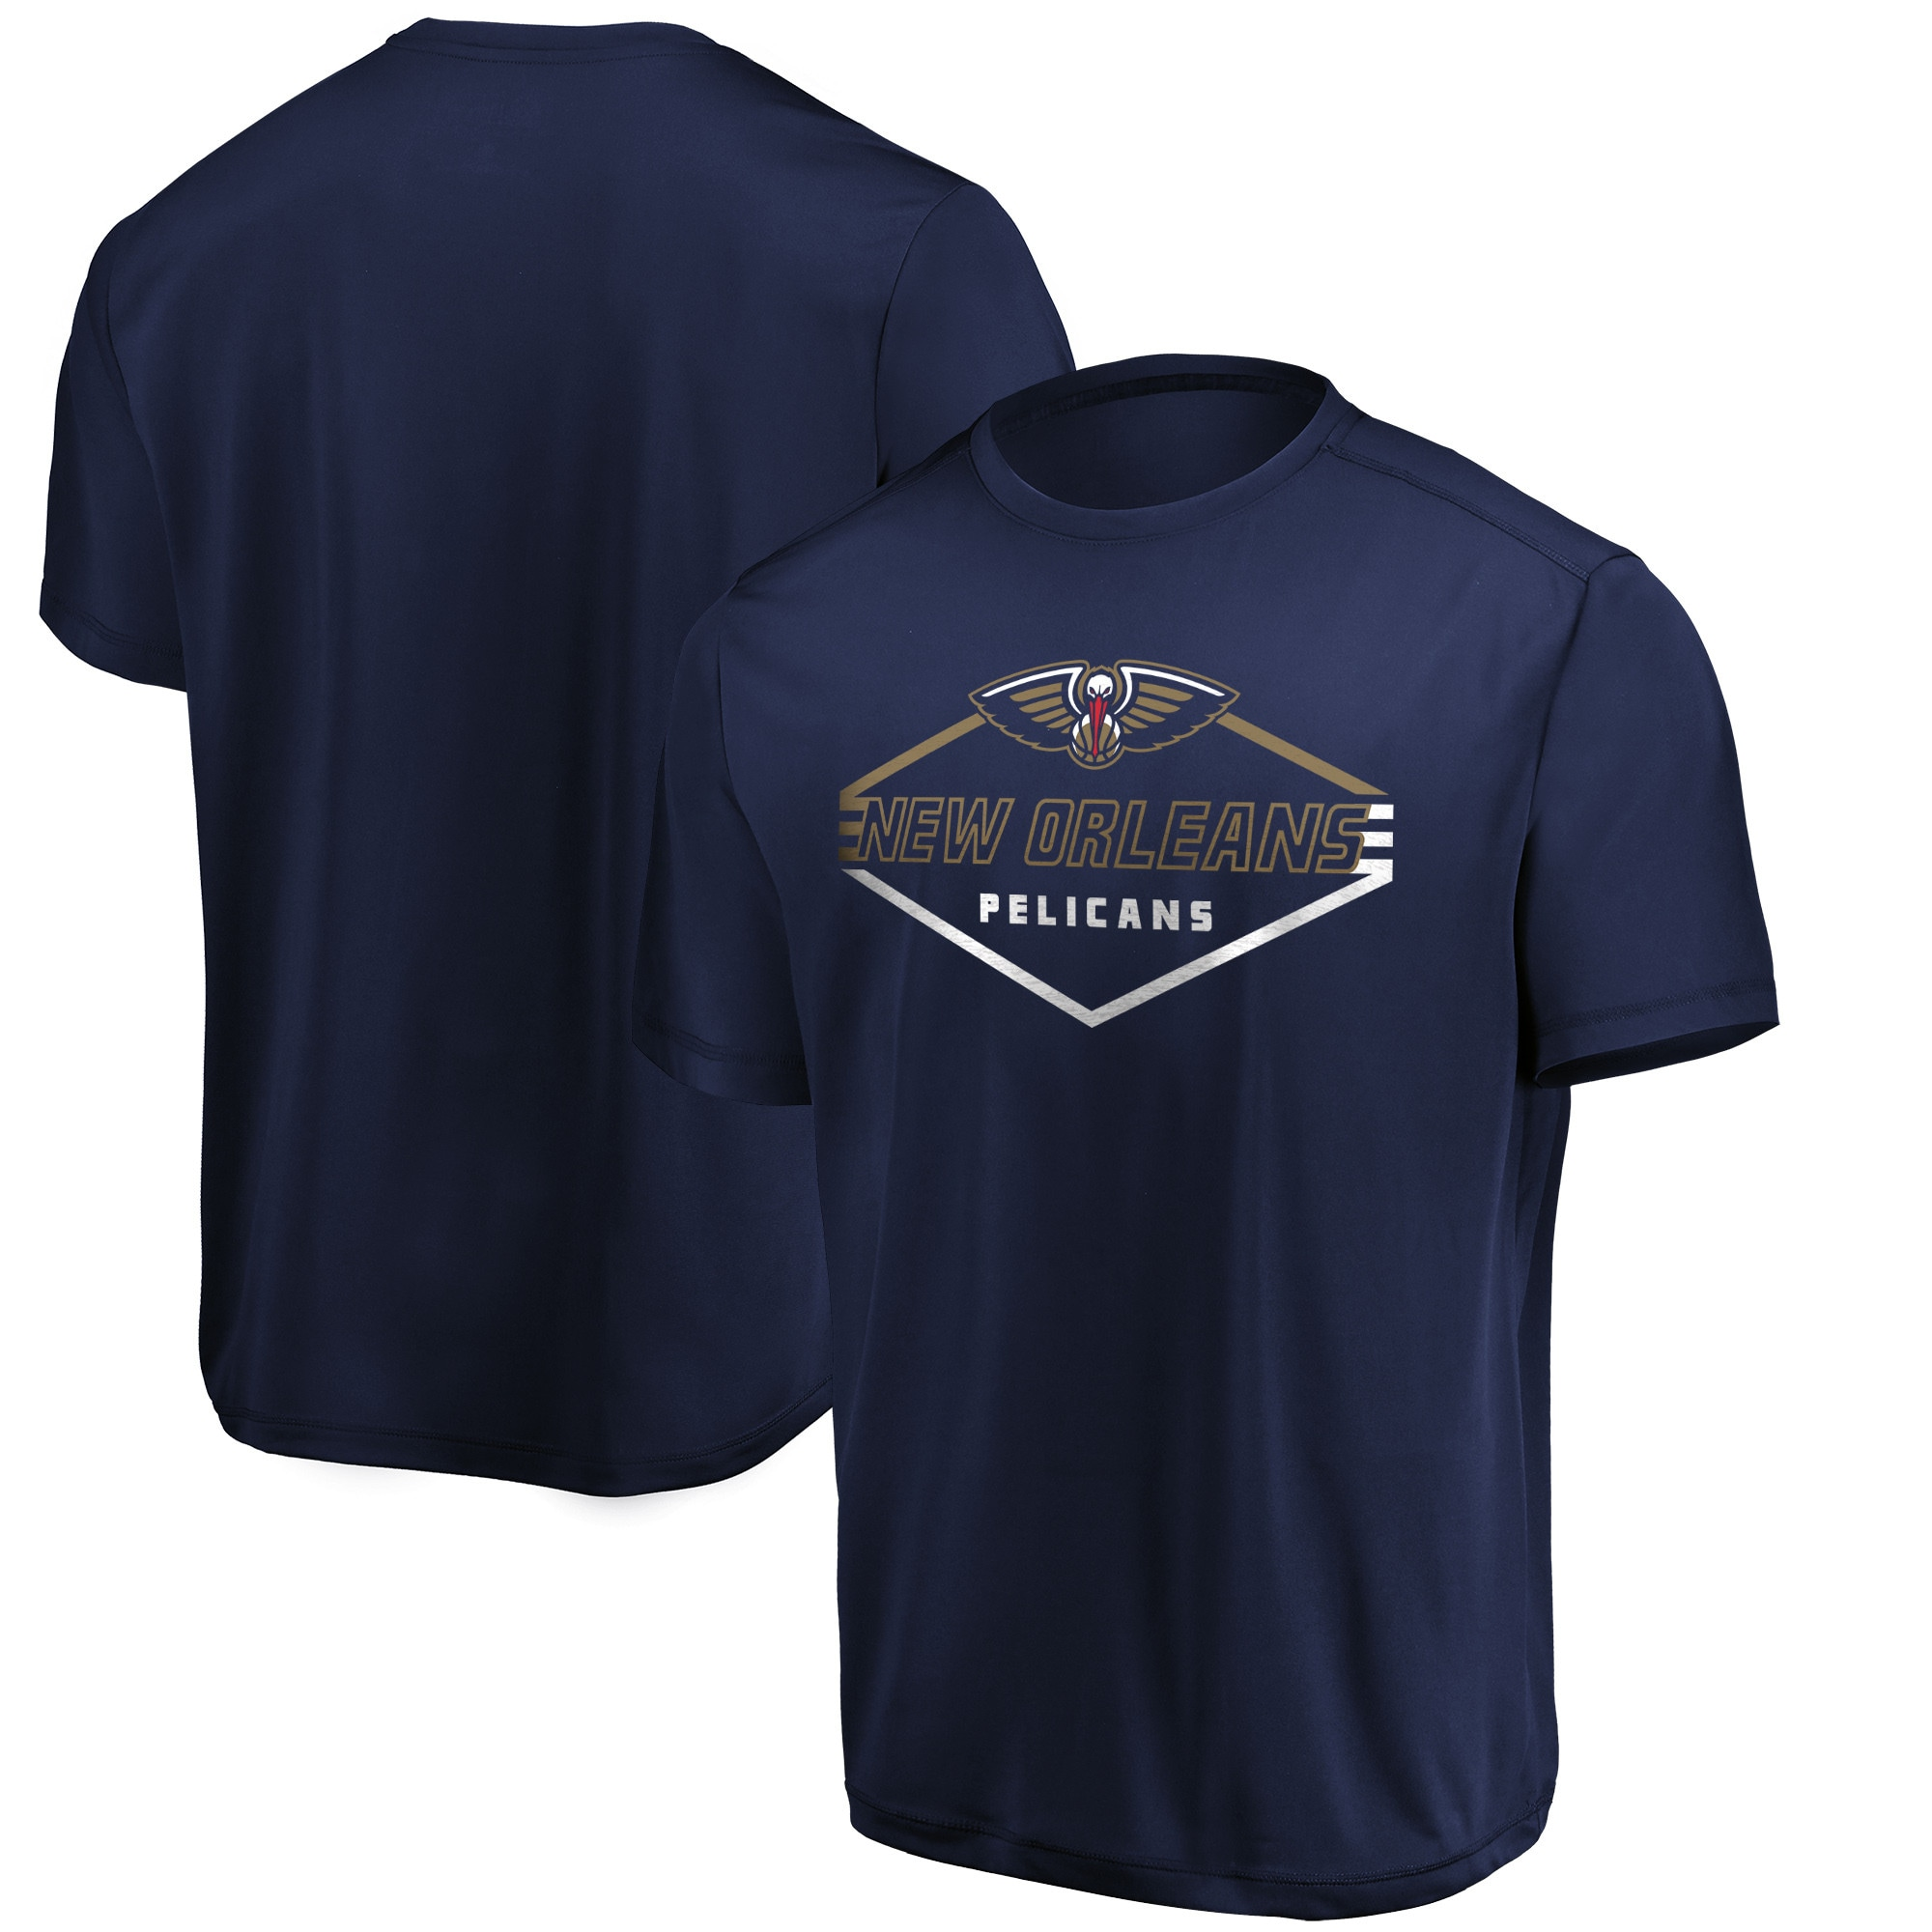 New Orleans Pelicans Majestic Appreciate the Journey Showtime T-Shirt - Navy